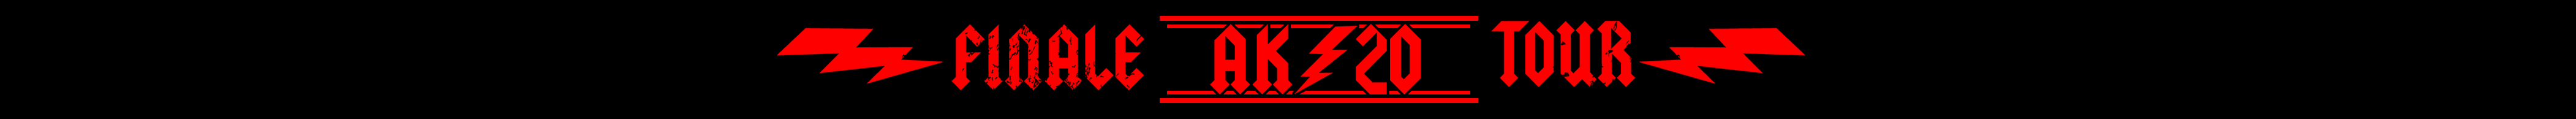 Abschluss-Stoffband AK20: ACDC Finale Tour